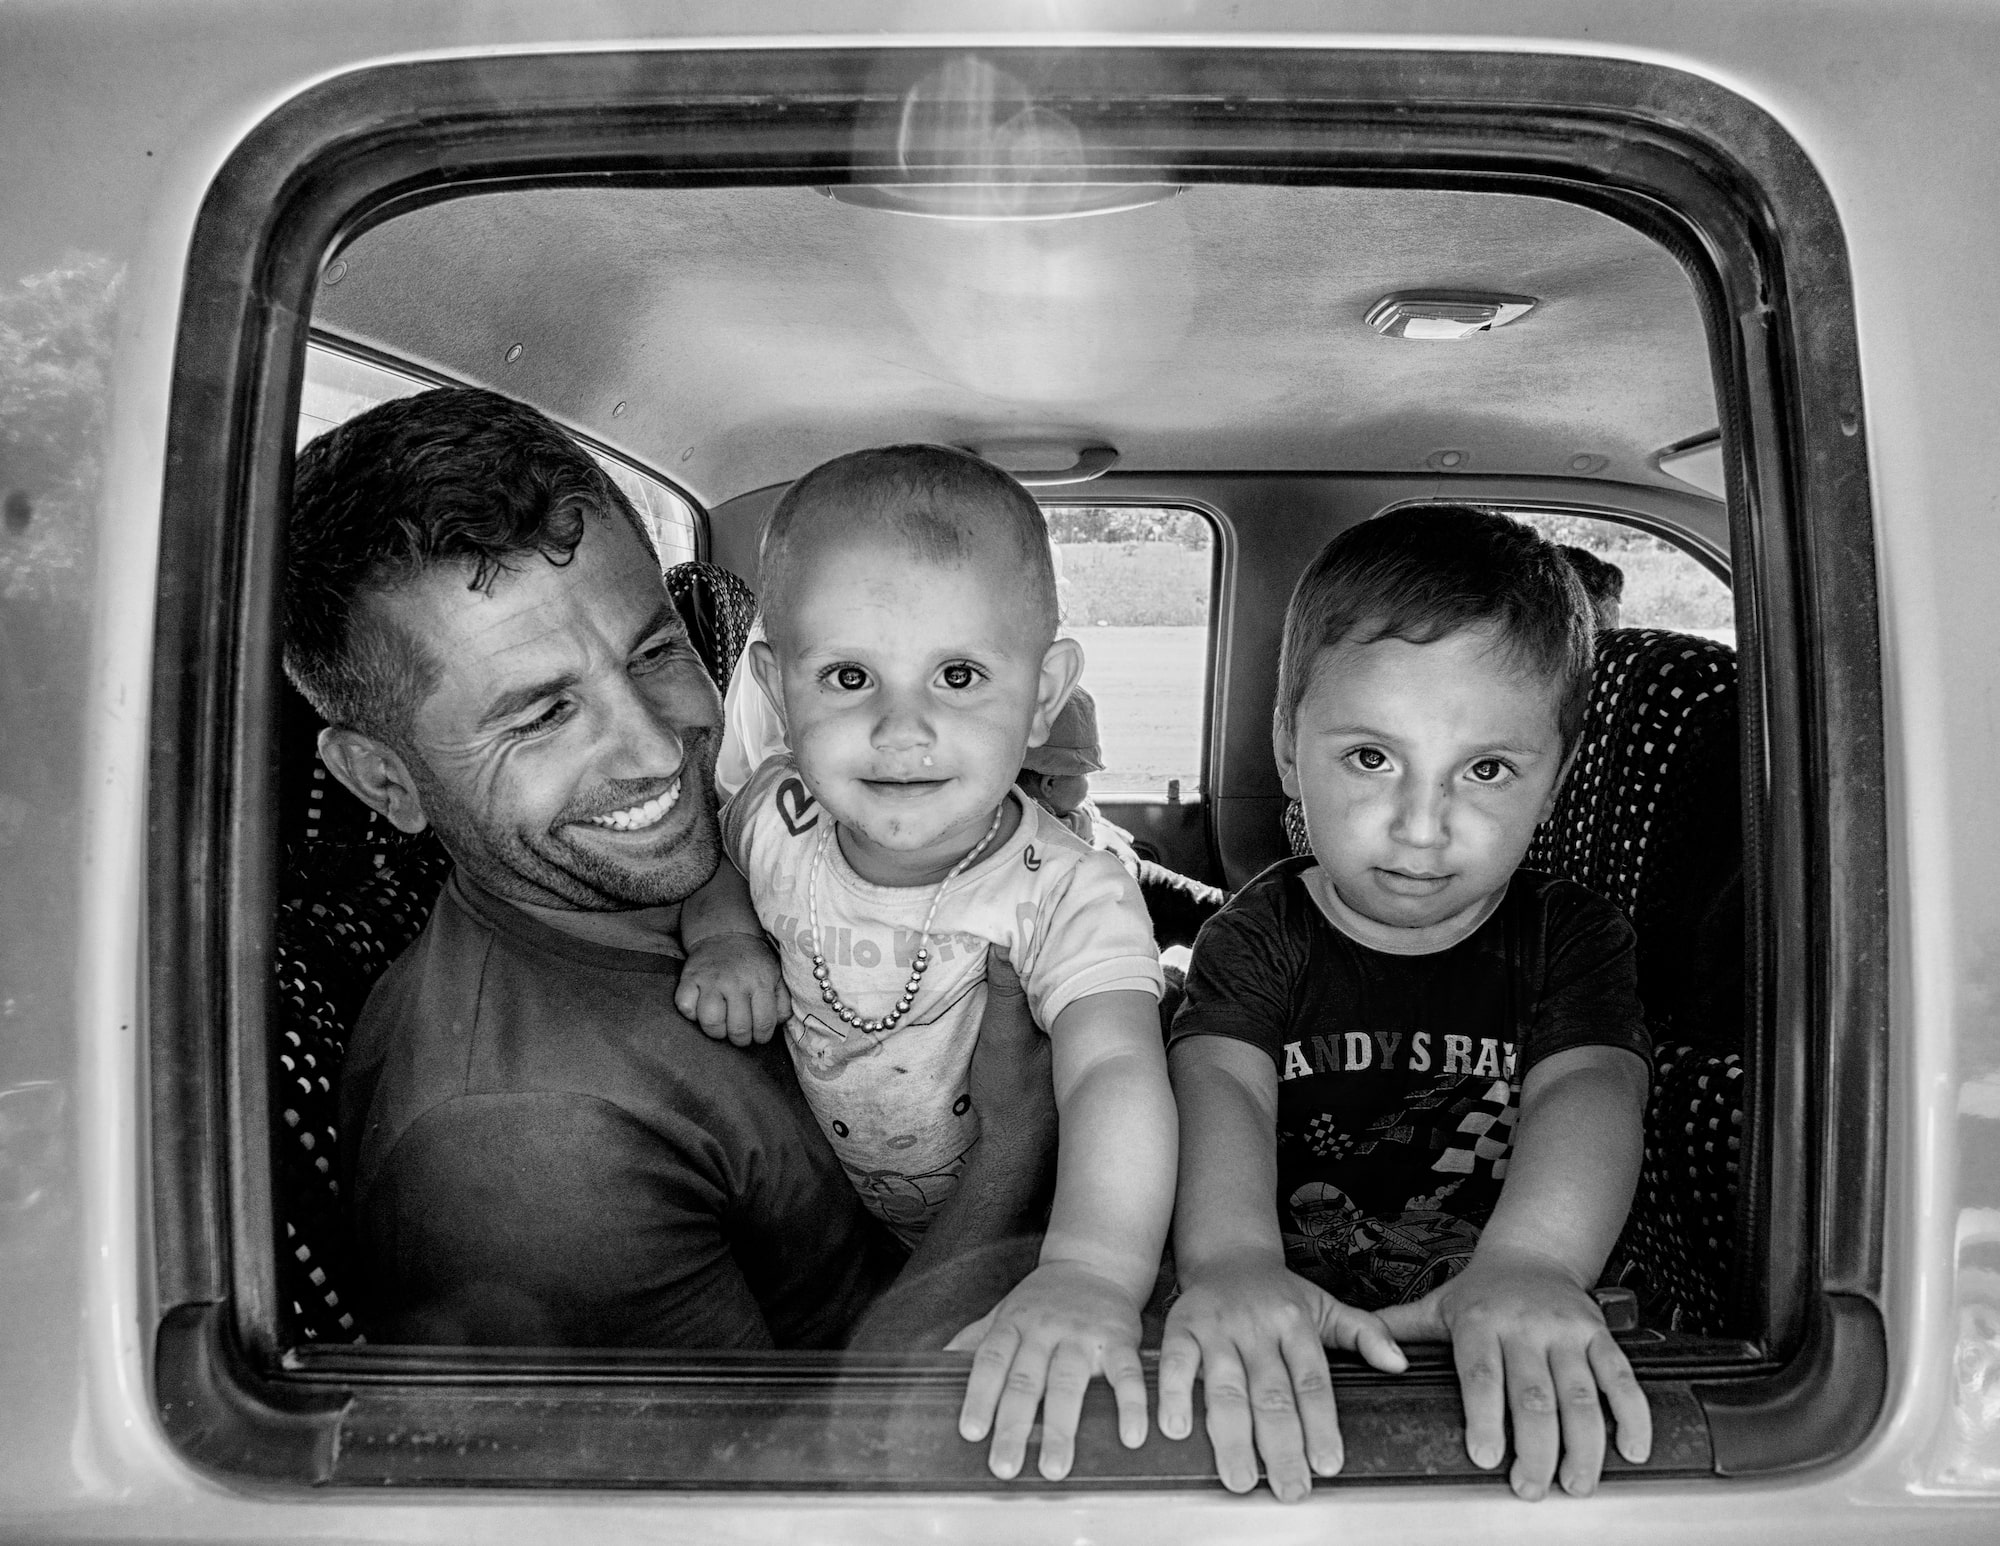 fatma sony alpha 7II father posing with his 2 children through a car window